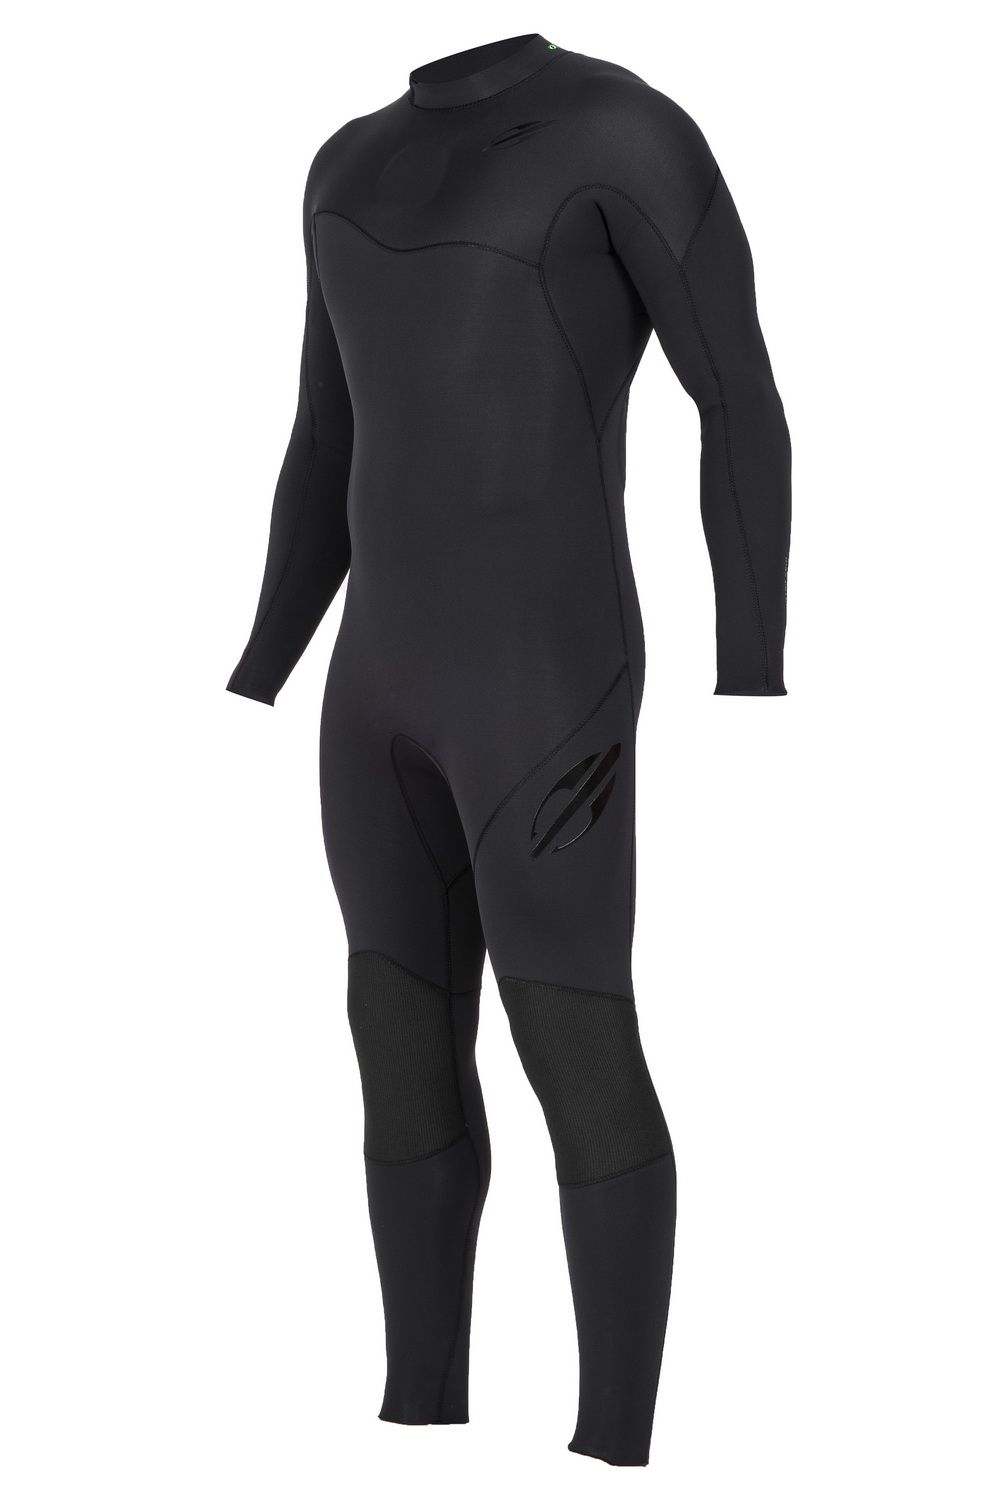 Long John Neoprene Masculino Mormaii Ultra Skin 3.2mm Vedado - Back Zip a424068b42